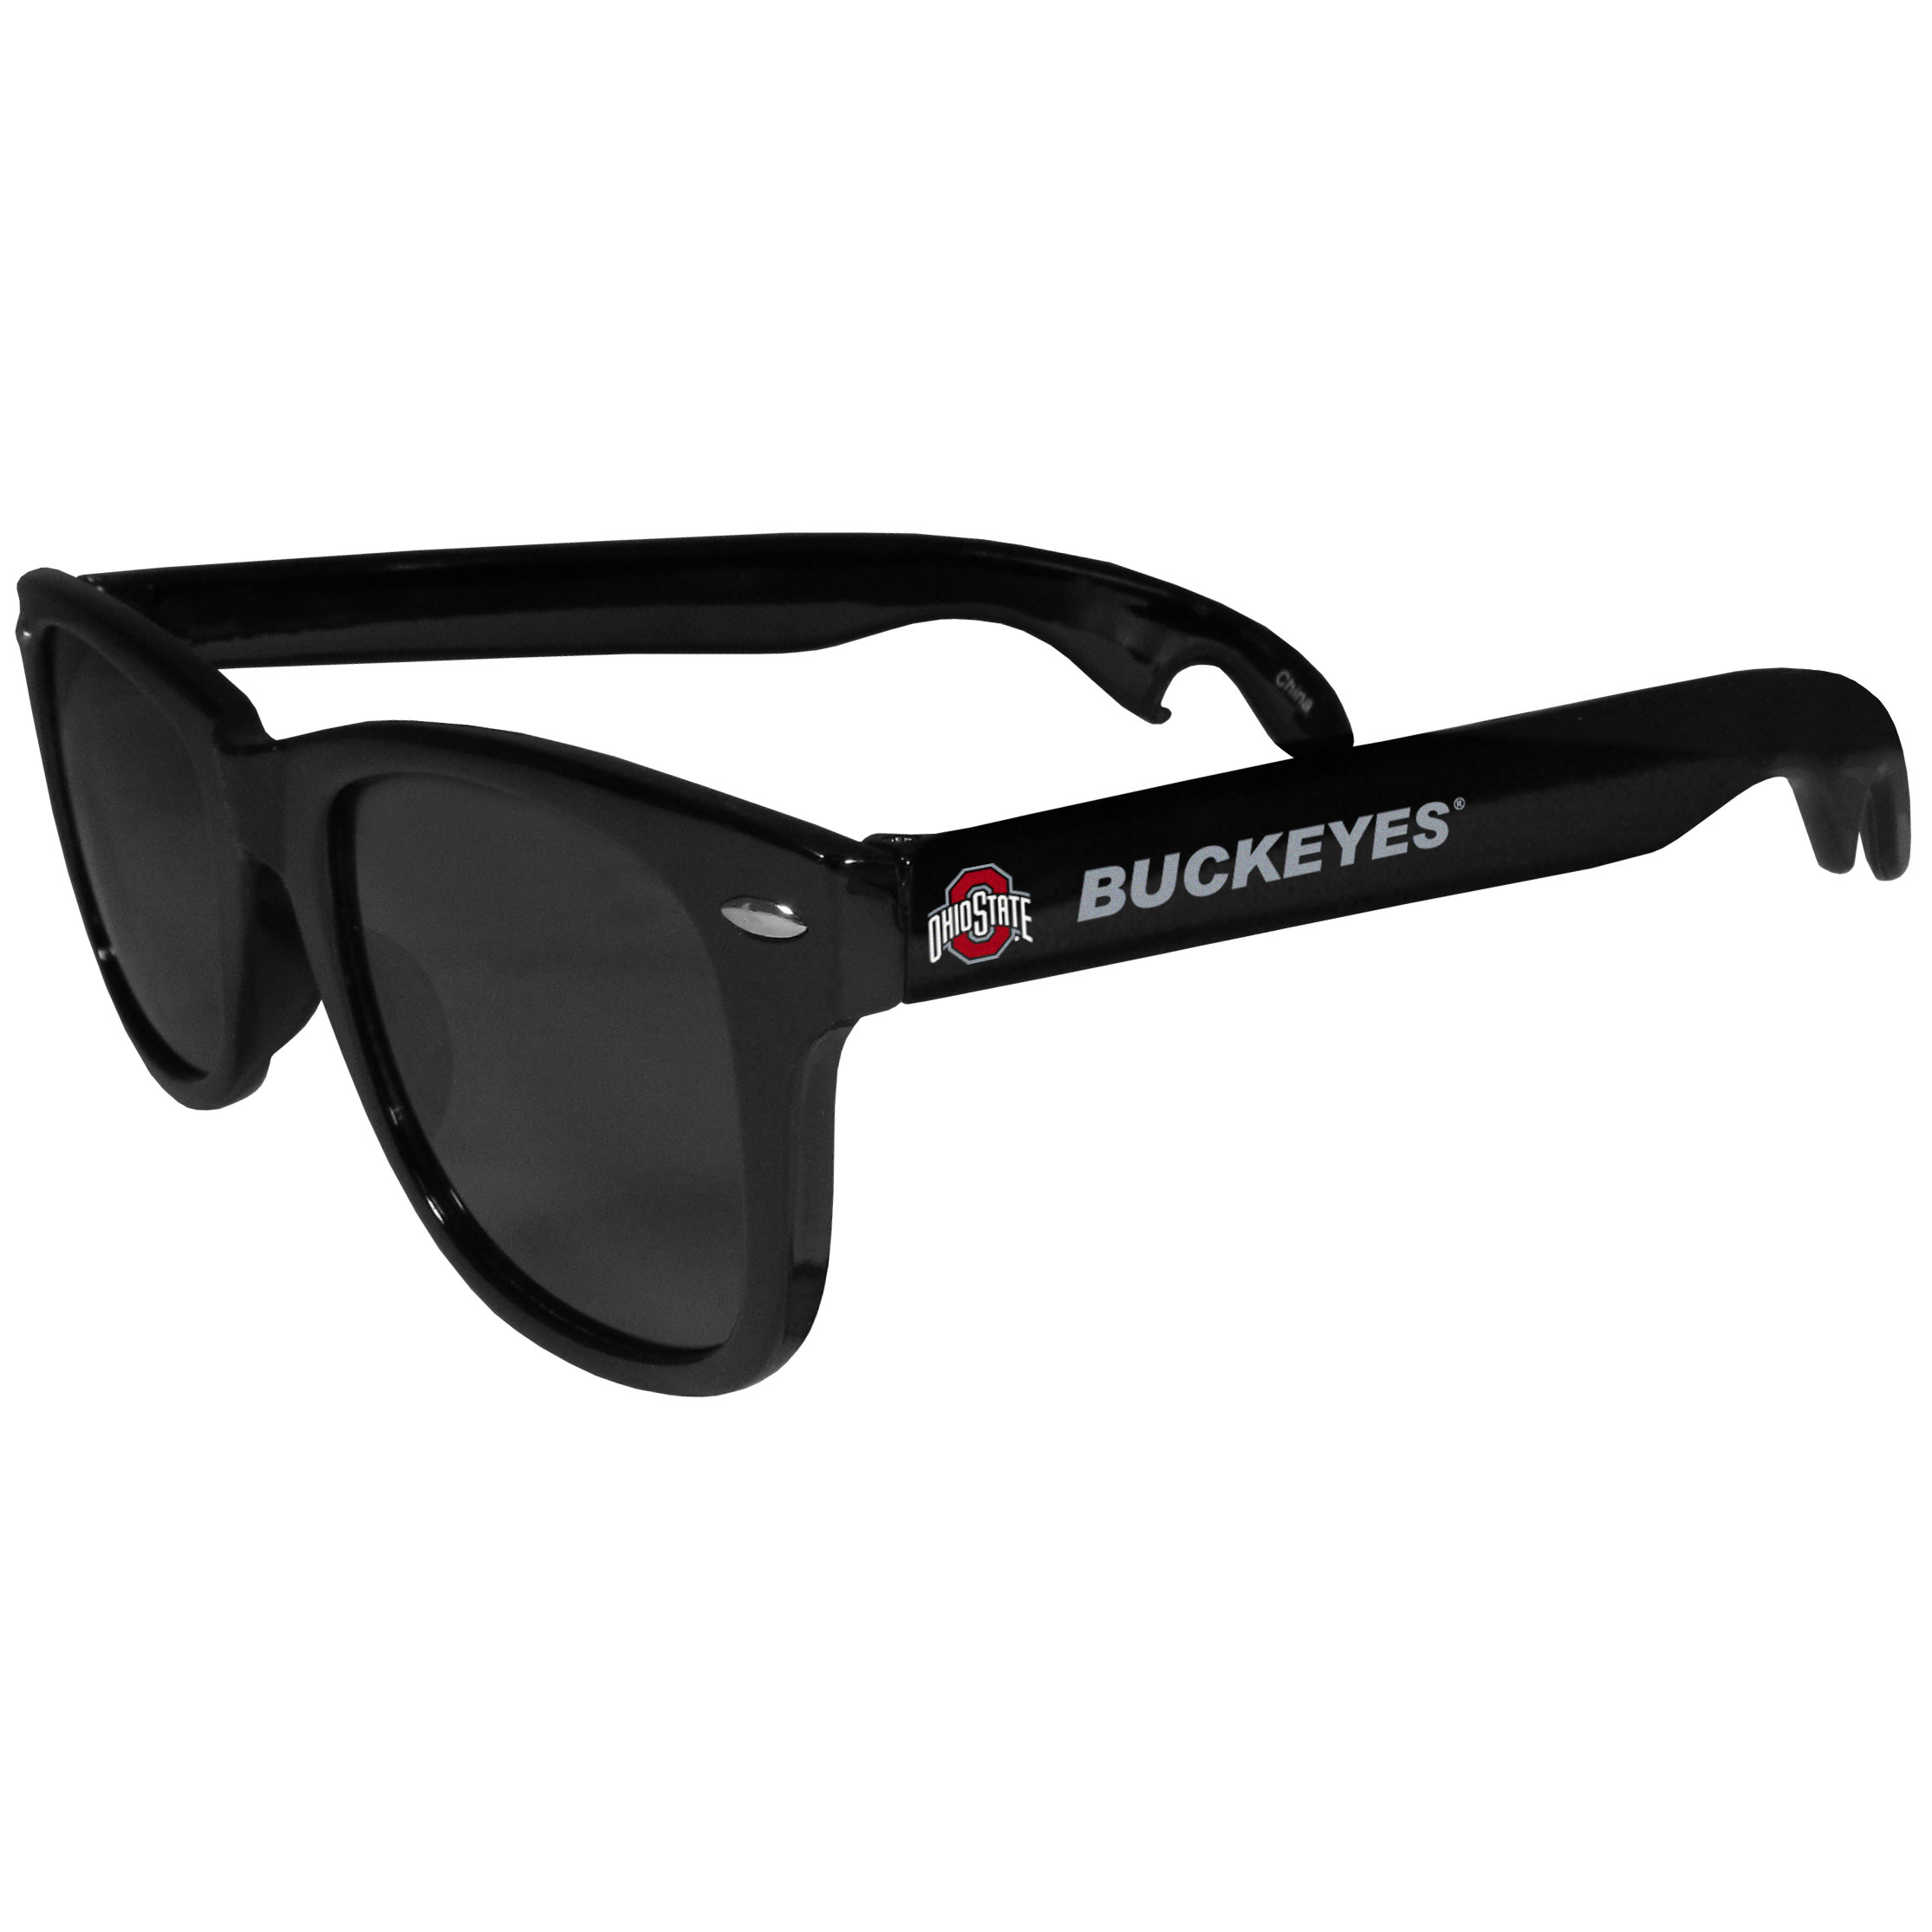 Ohio St. Buckeyes Beachfarer Bottle Opener Sunglasses - Seriously, these sunglasses open bottles! Keep the party going with these amazing Ohio St. Buckeyes bottle opener sunglasses. The stylish retro frames feature team designs on the arms and functional bottle openers on the end of the arms. Whether you are at the beach or having a backyard BBQ on game day, these shades will keep your eyes protected with 100% UVA/UVB protection and keep you hydrated with the handy bottle opener arms.